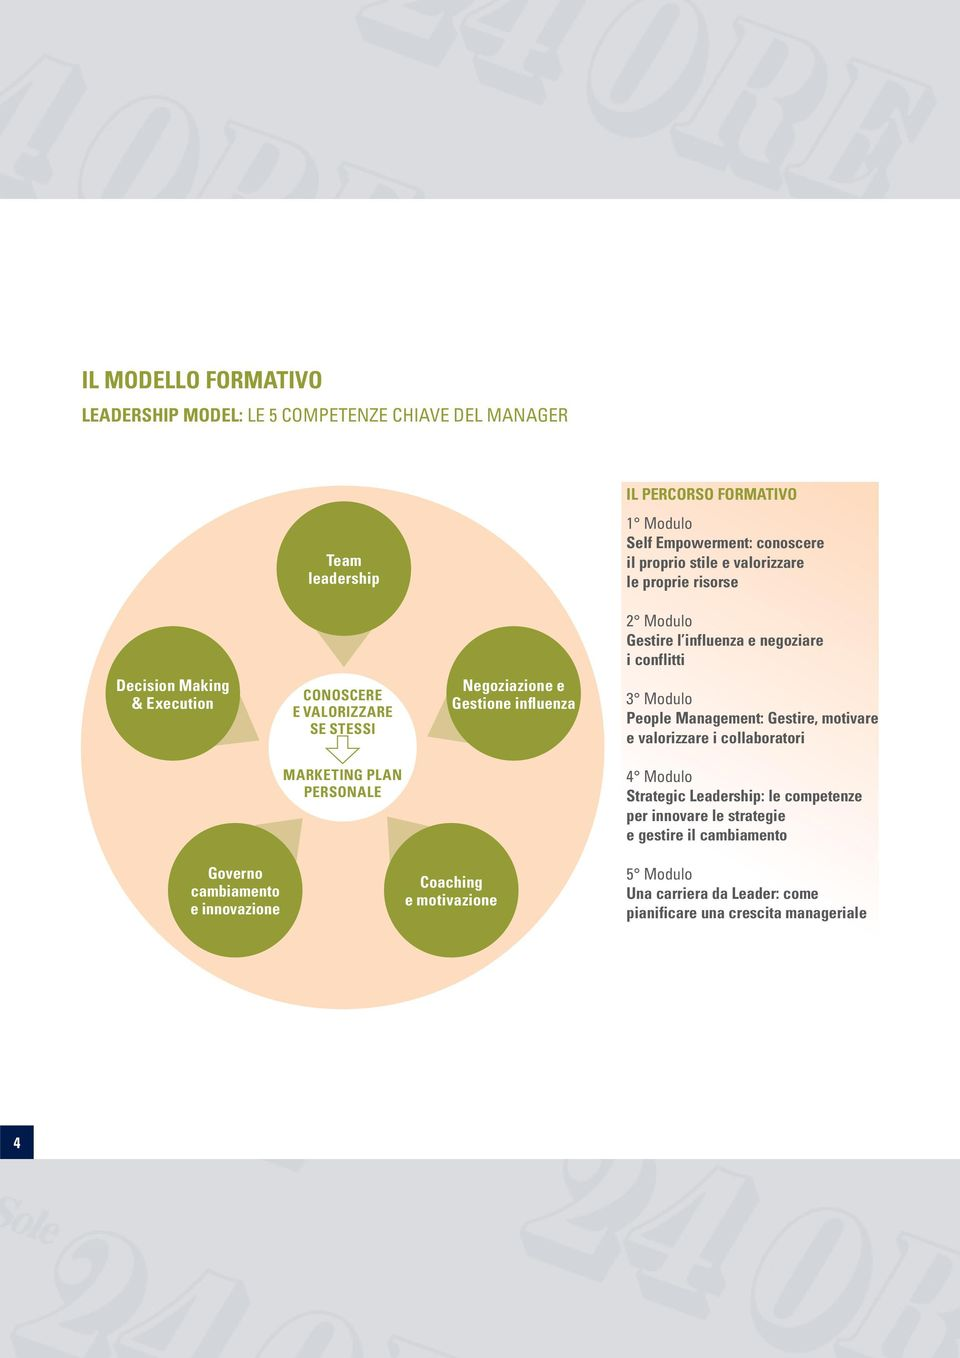 influenza 3 Modulo People Management: Gestire, motivare e valorizzare i collaboratori MARKETING PLAN PERSONALE 4 Modulo Strategic Leadership: le competenze per innovare